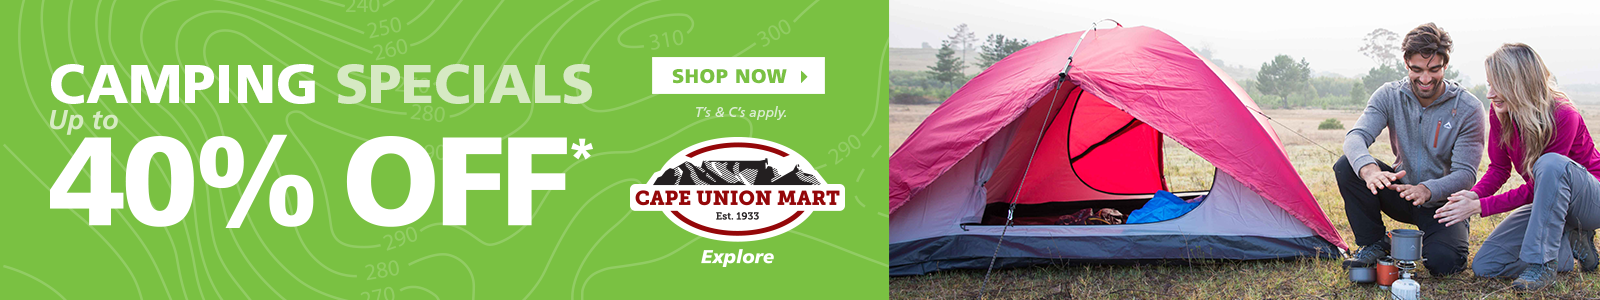 cape-union-mart-C&ing-Specials  sc 1 st  Africa Geographic Magazine & cape-union-mart-Camping-Specials - Africa Geographic Magazine